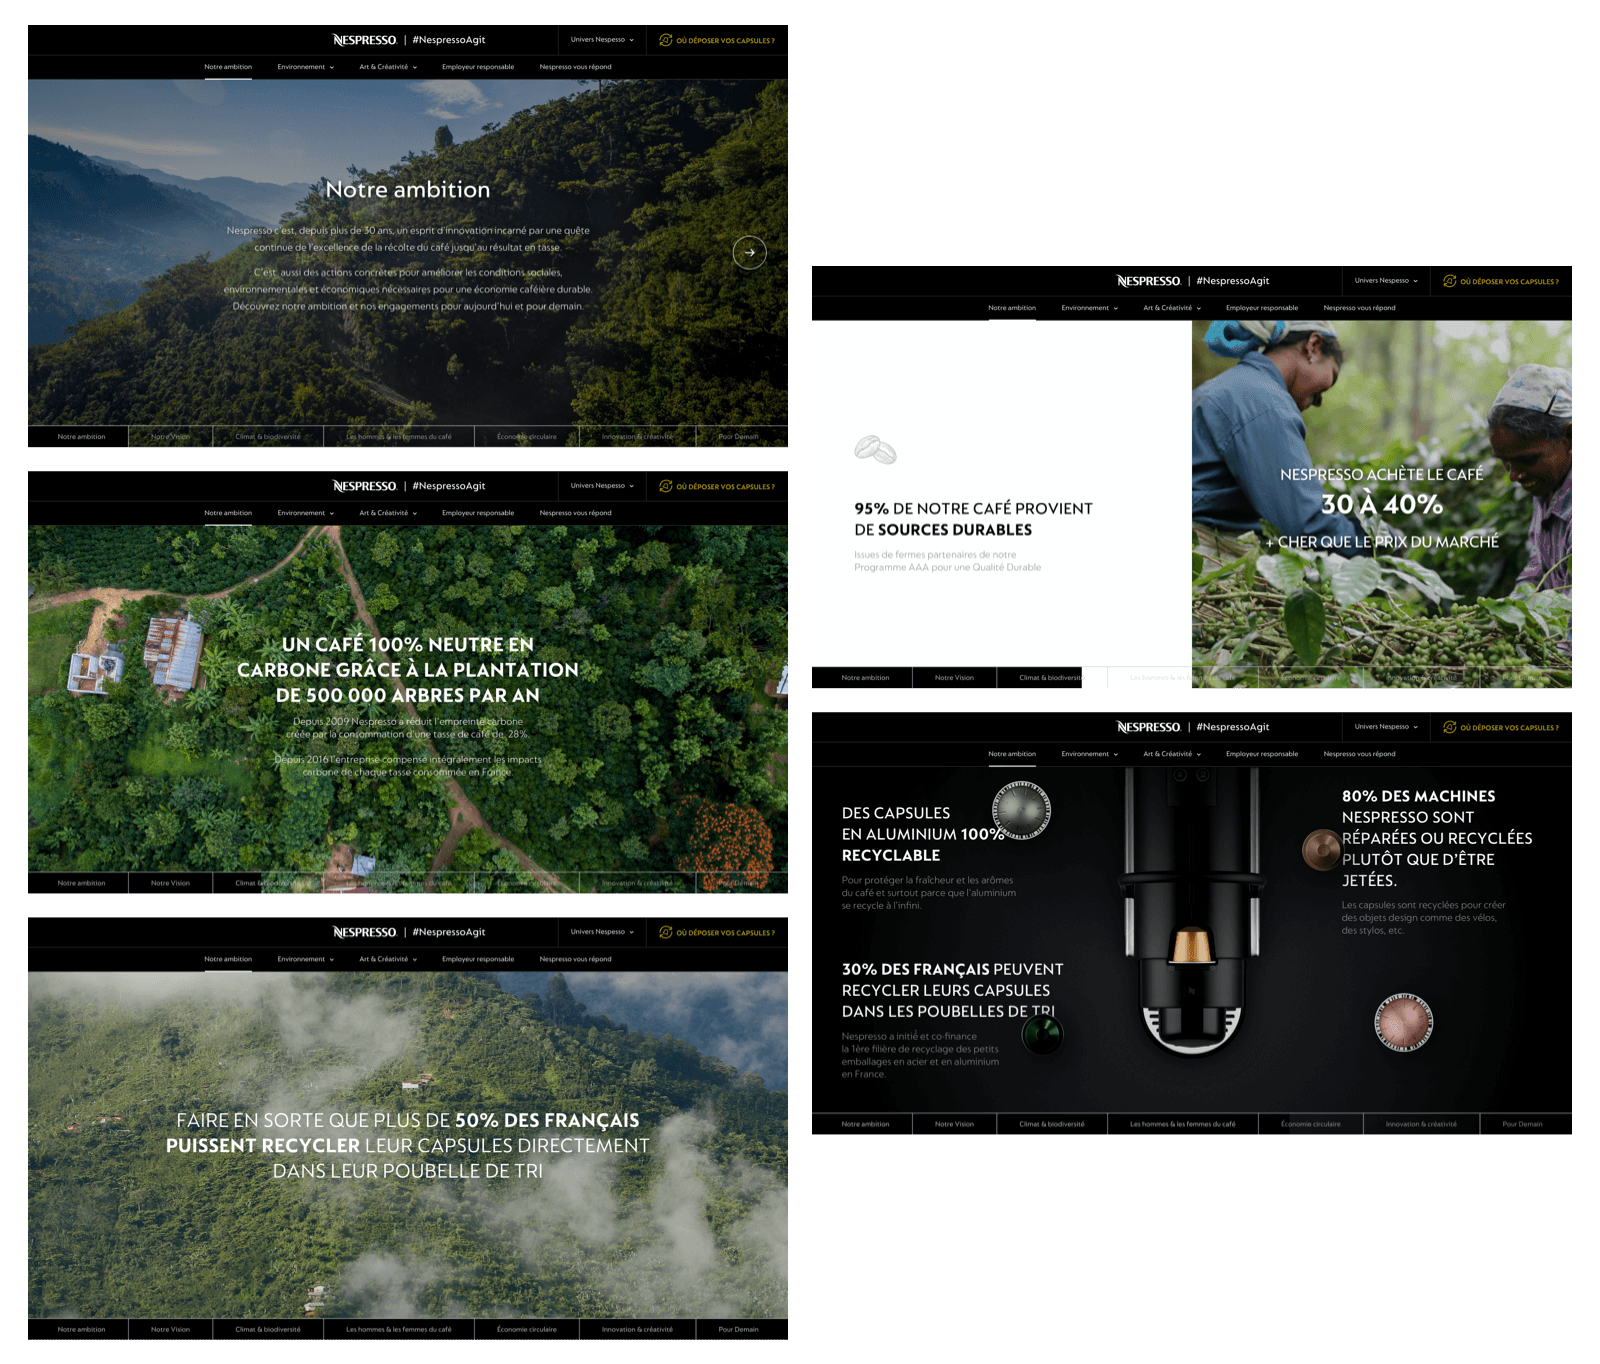 Nespresso agit ambition timeline page